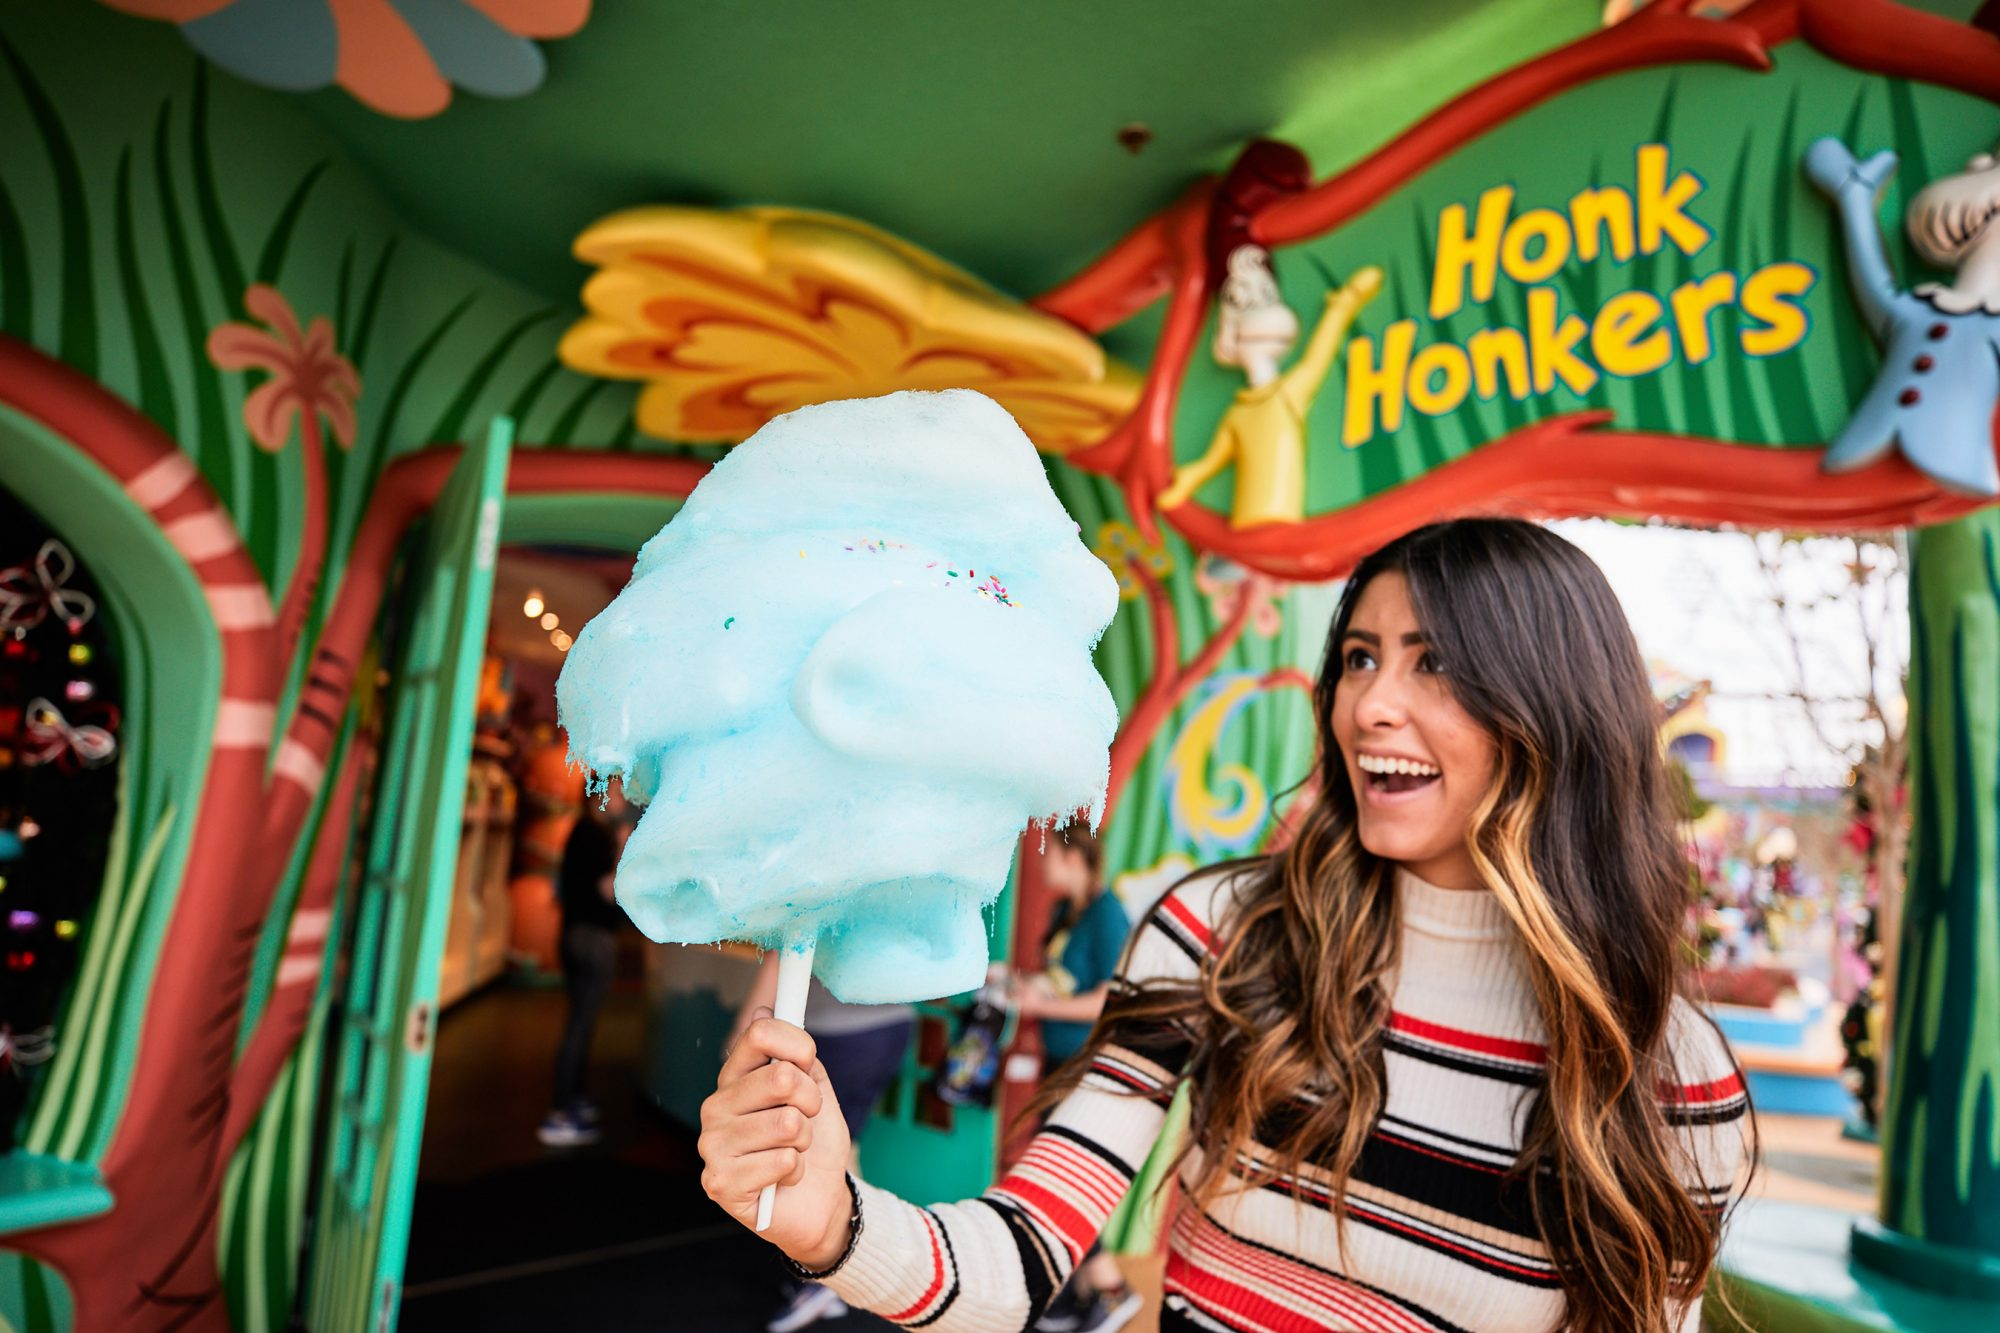 Dr. Seuss Cotton Candy at Honk Honkers in Islands of Adventure, Universal Orlando Resort